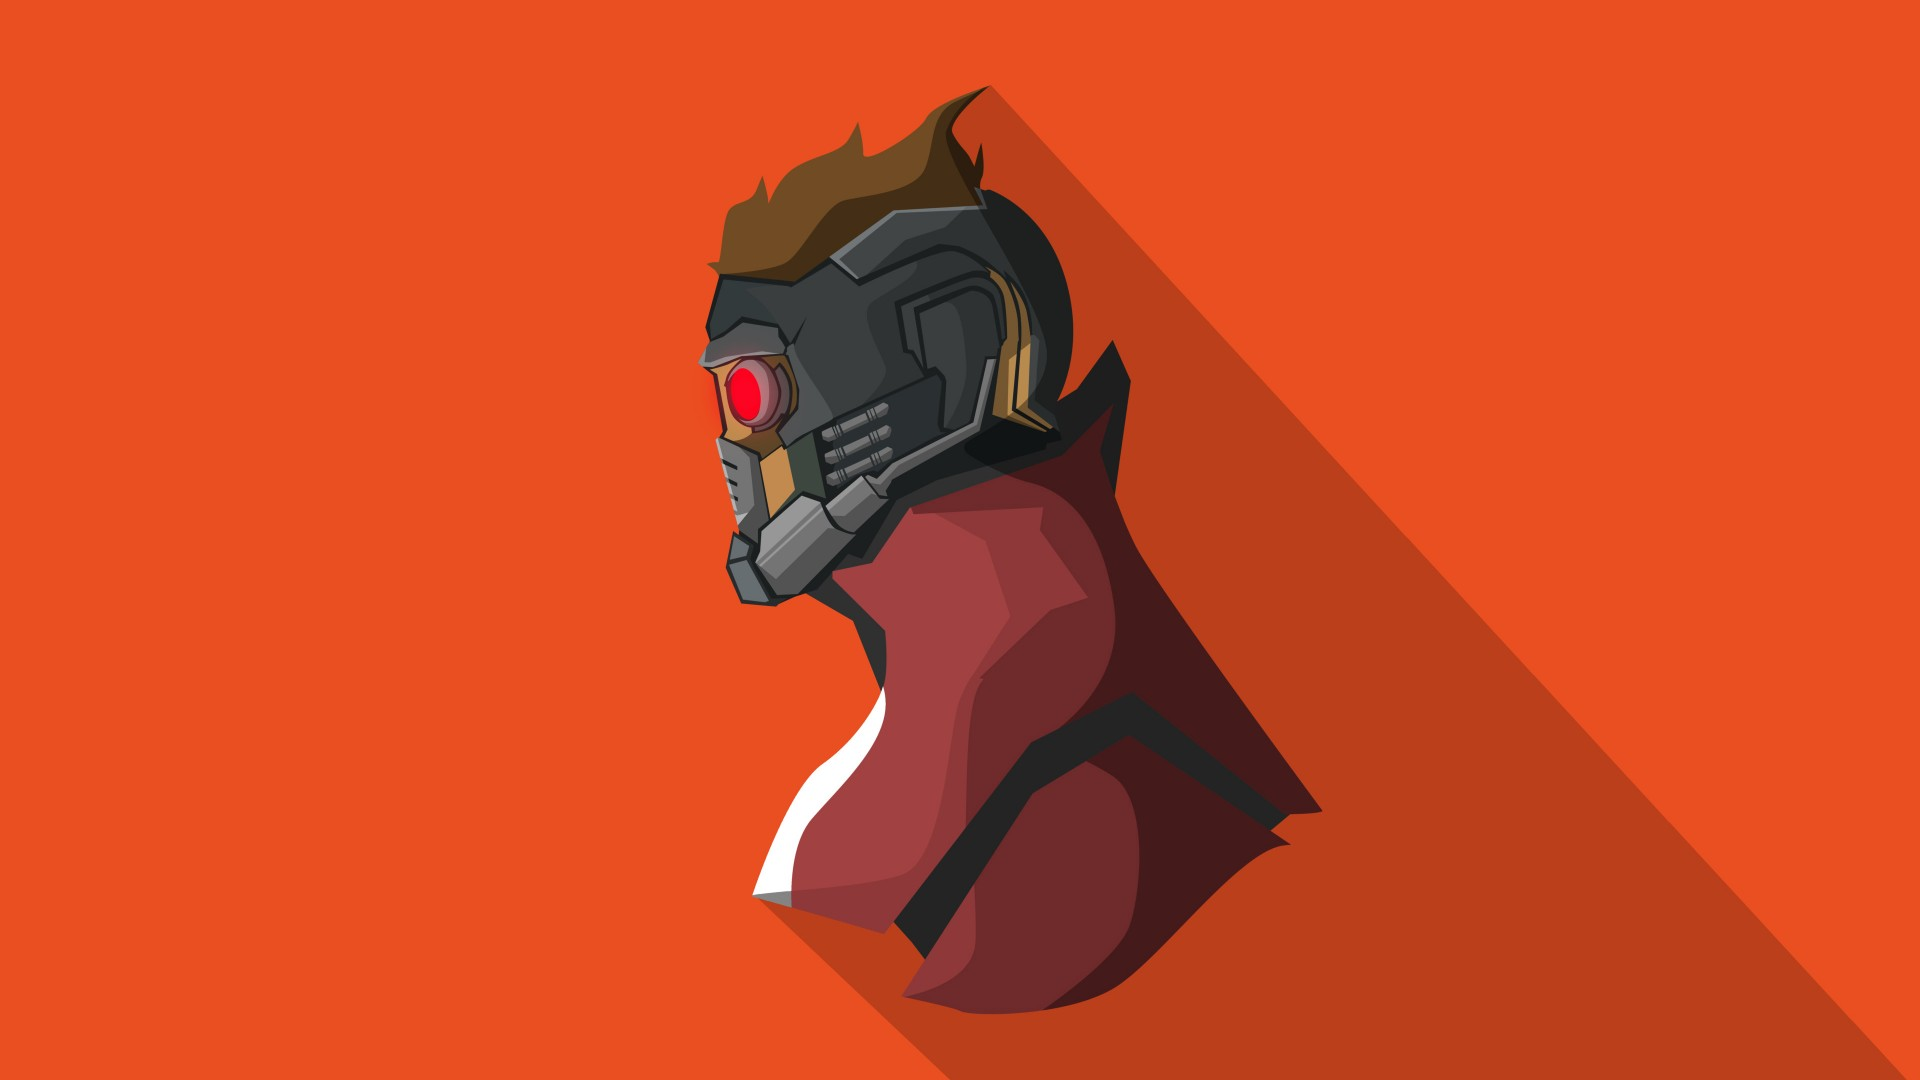 Iron Man 3d Wallpaper For Android Star Lord Minimal Artwork 4k Wallpapers Hd Wallpapers